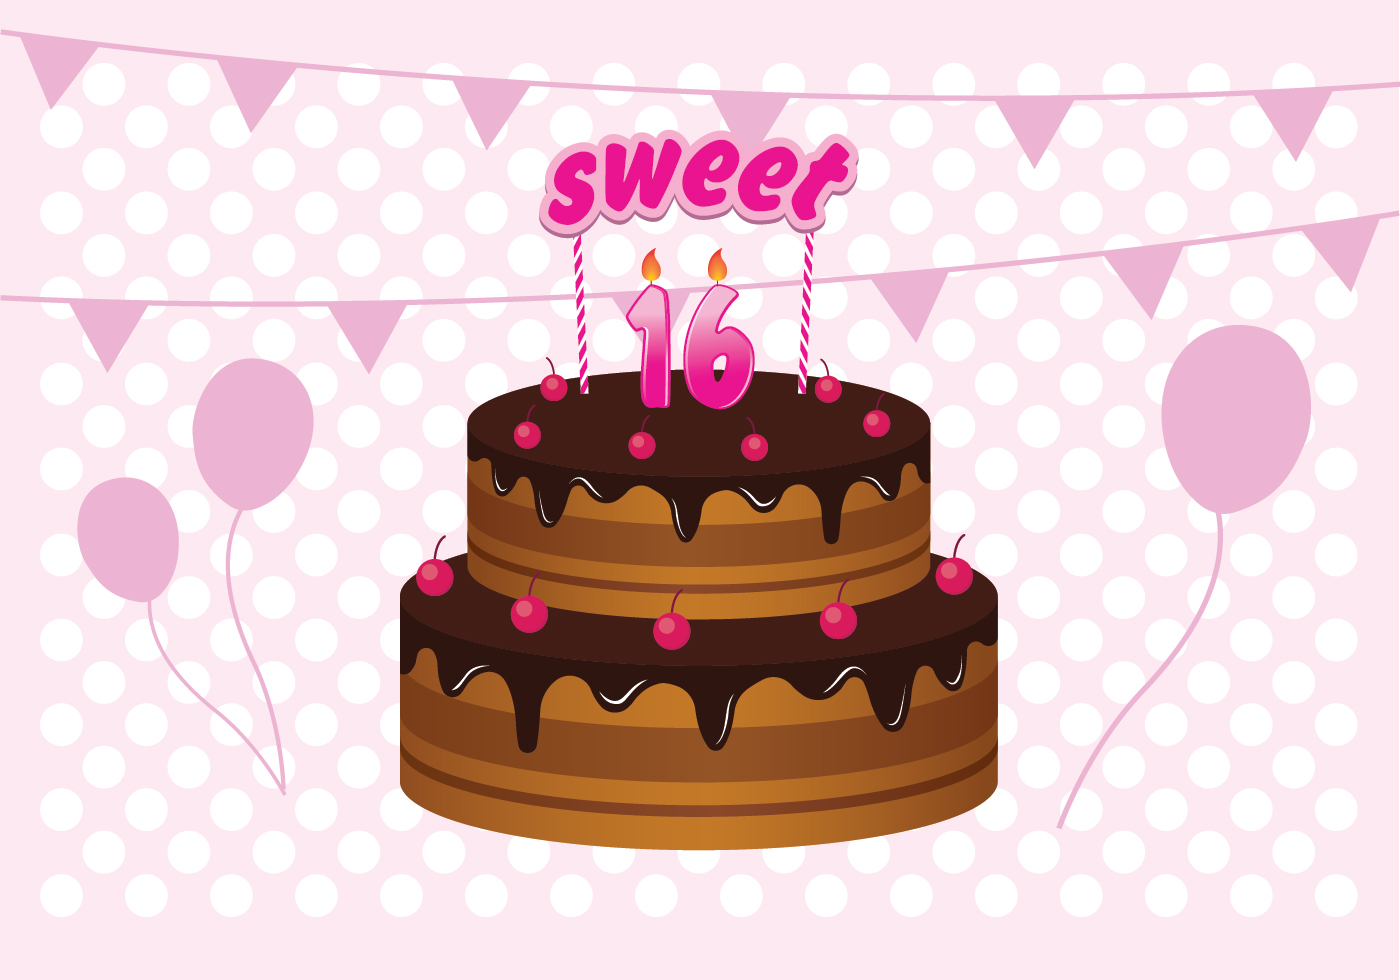 Sweet 16 Birthday Cake Illustration - Download Free Vector ...